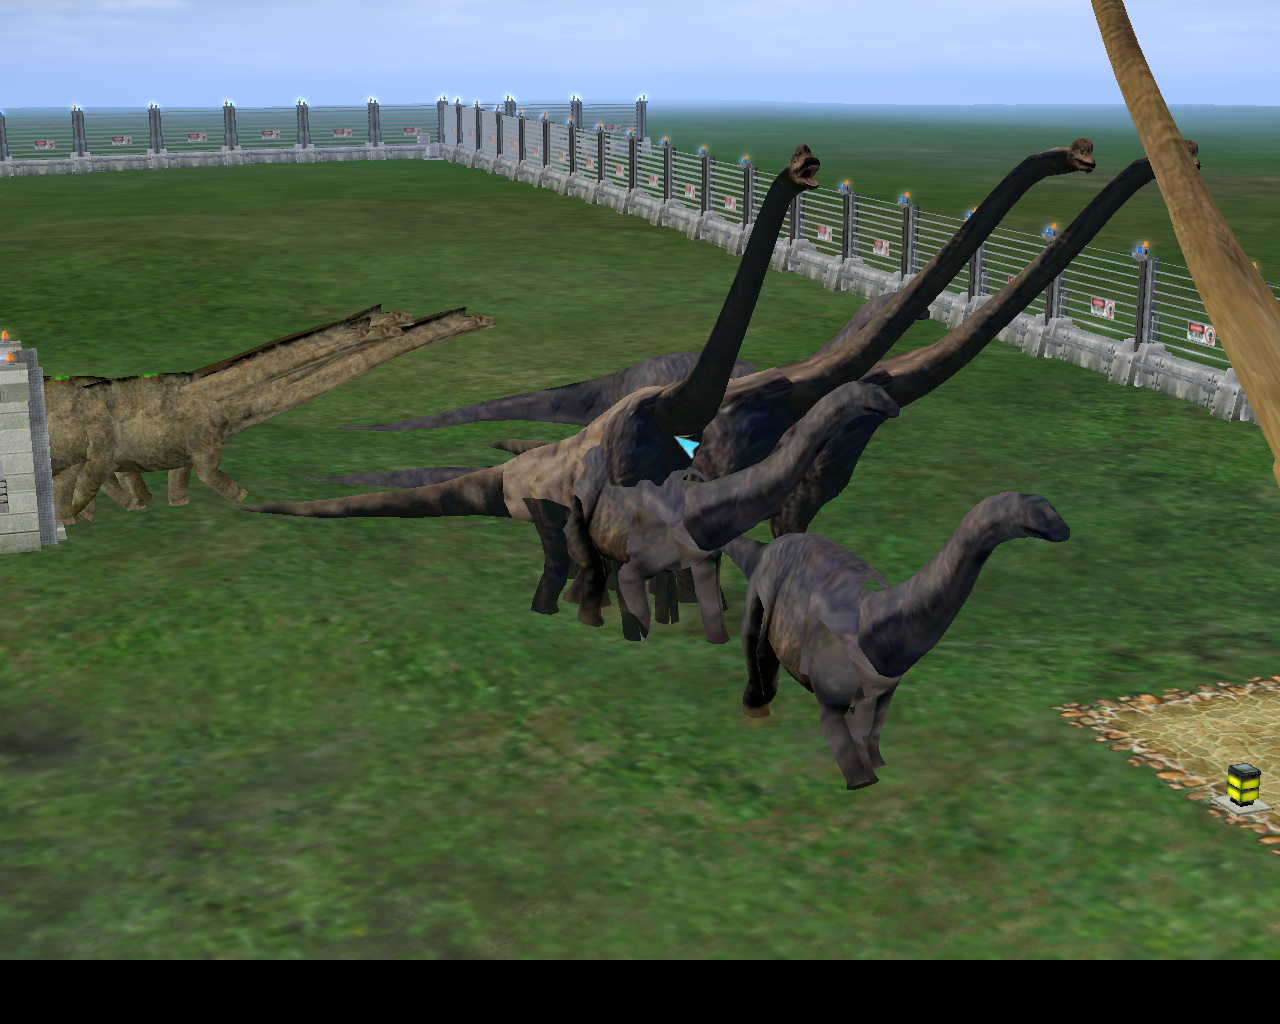 Dreadnoughtus Size Next to other sauropods image - JPOEG